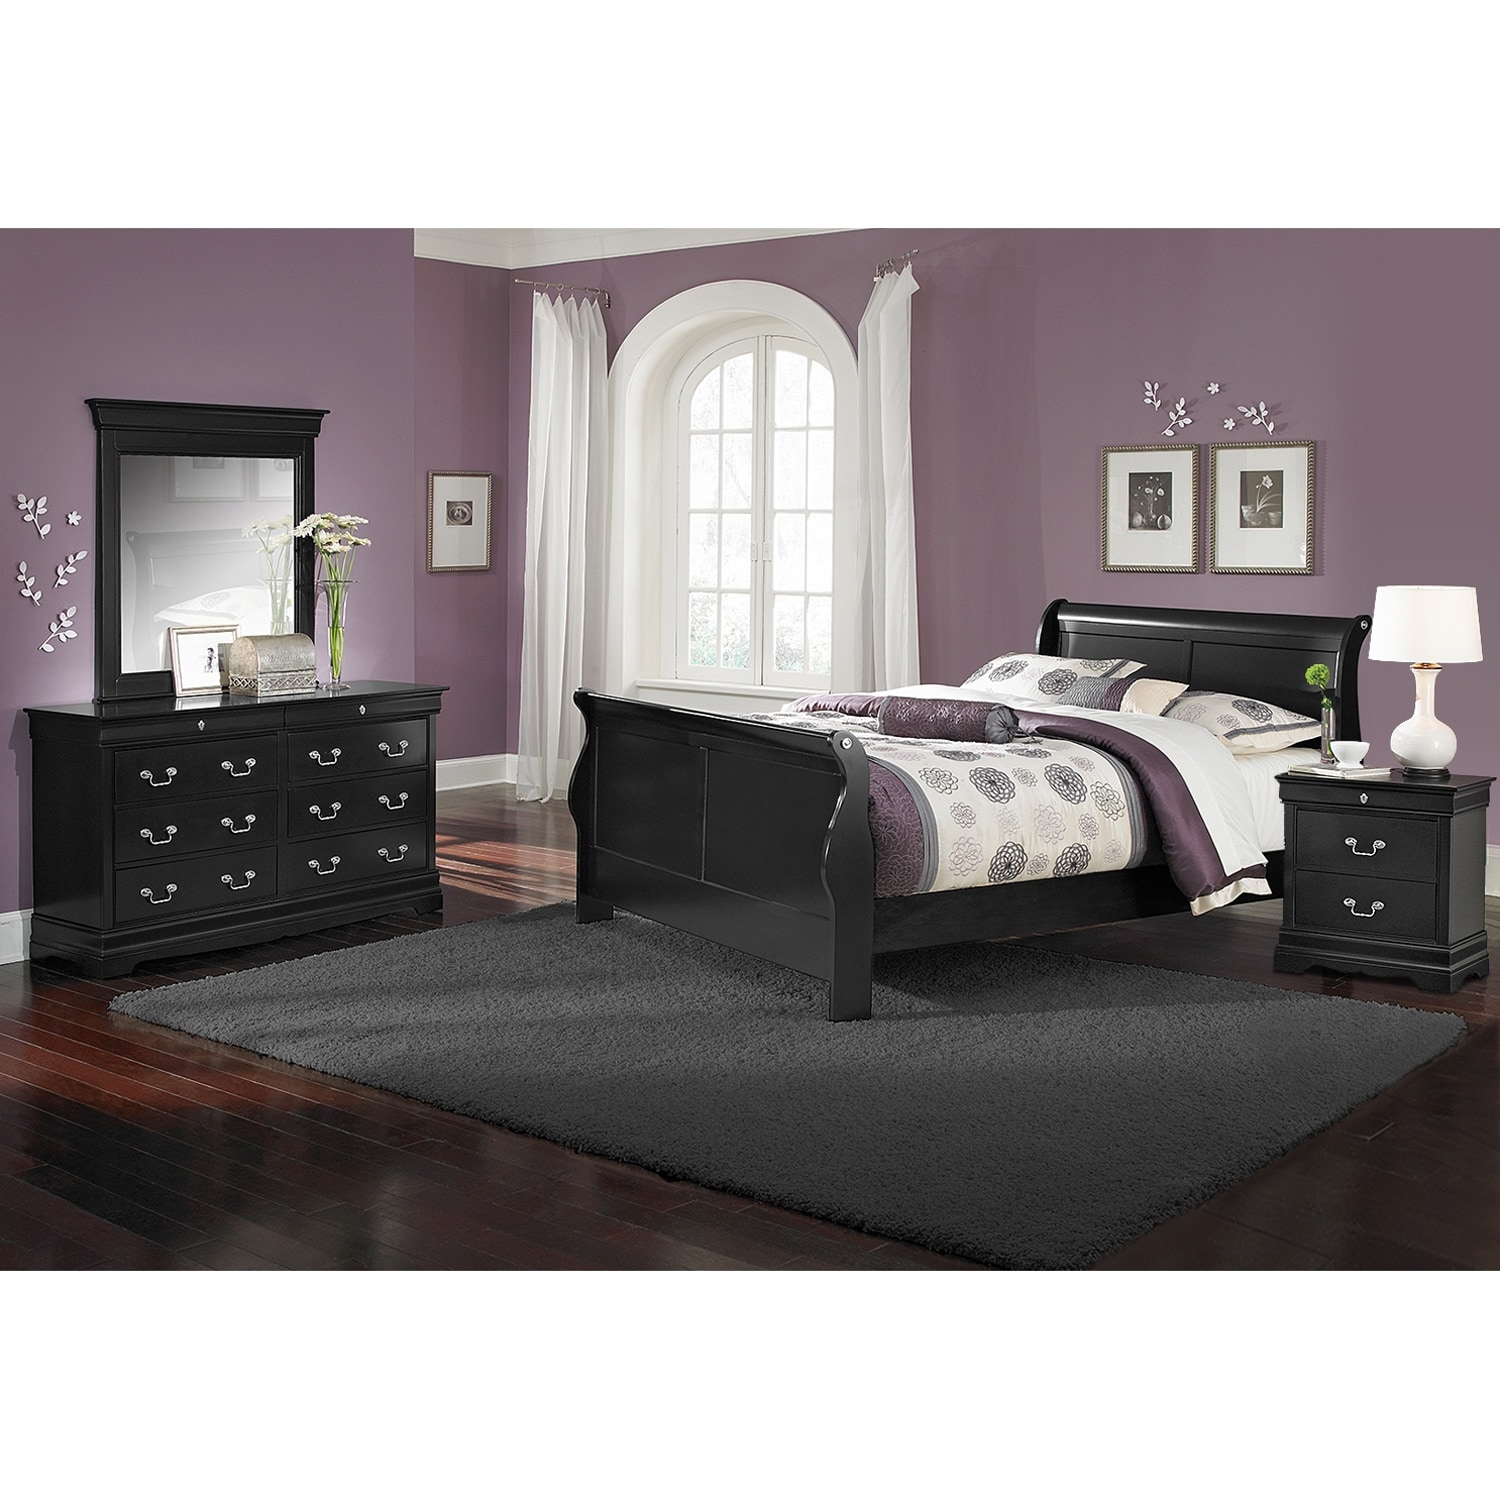 [Neo Classic Black II 6 Pc. Full Bedroom]